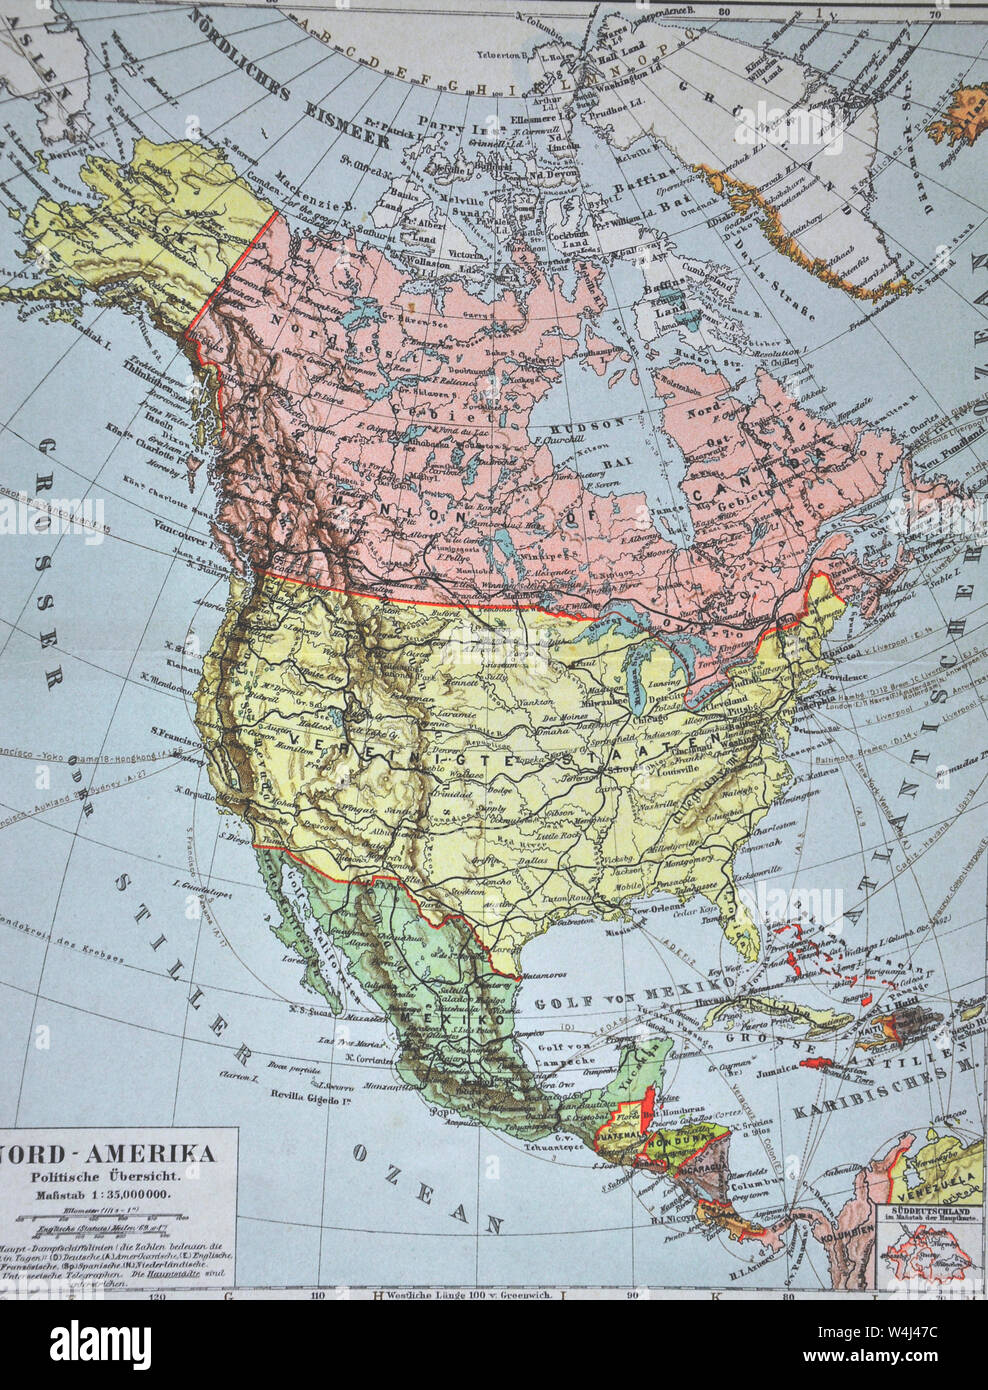 1900 Meyer Map of North America showing Canada, the United ...